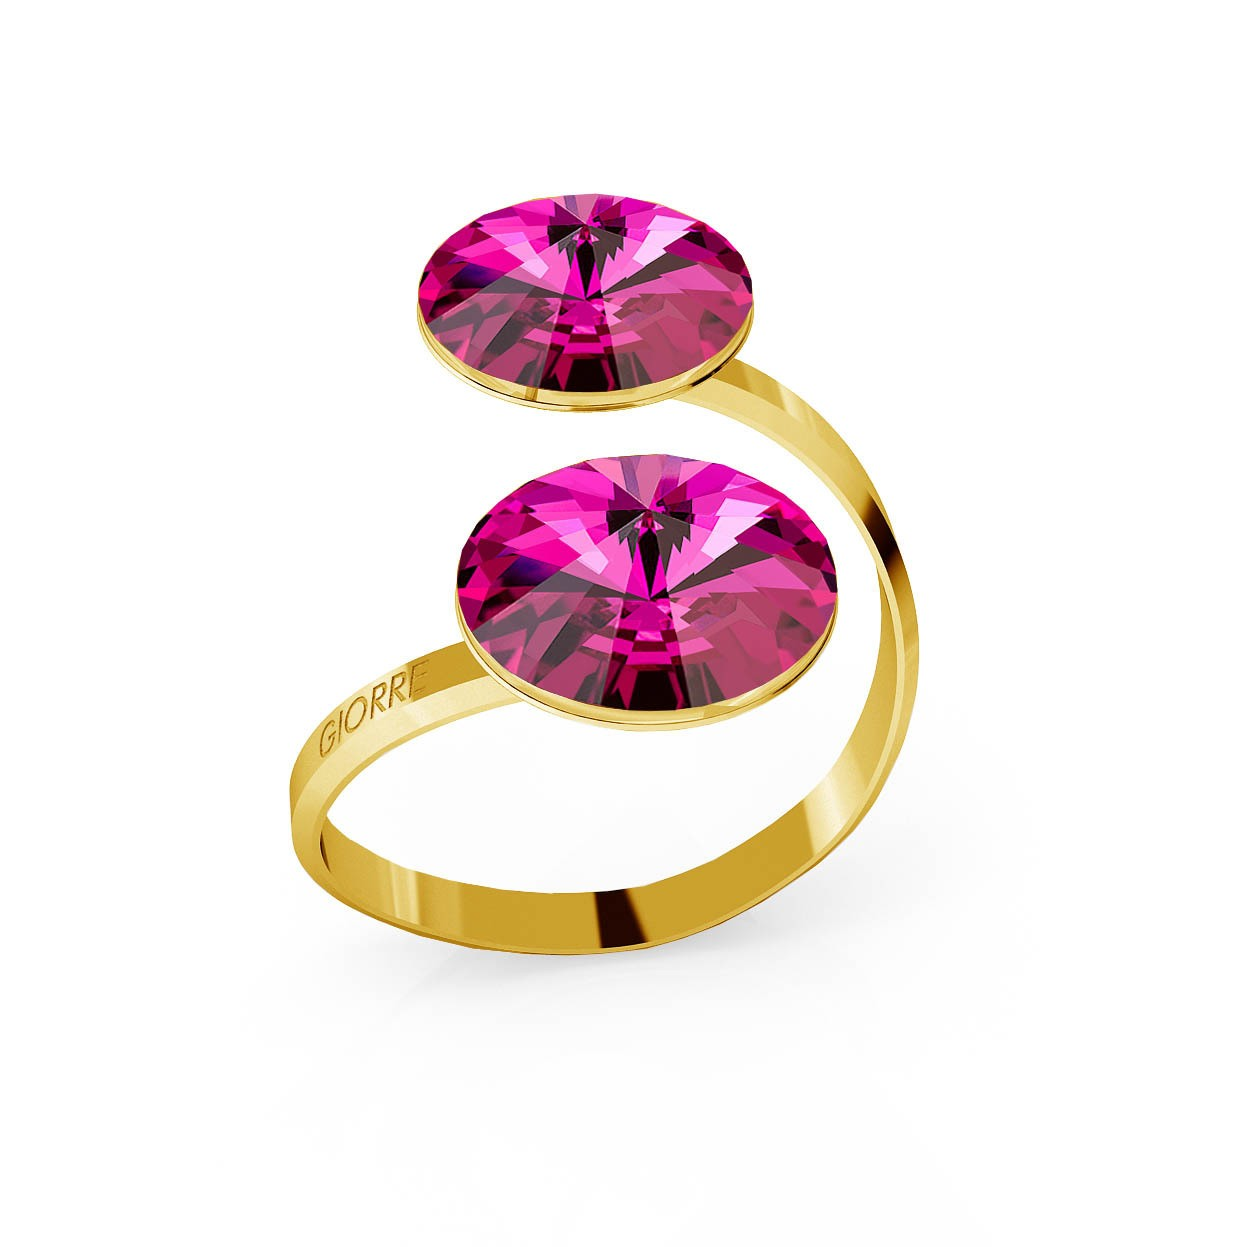 RIVOLI RING WITH 2 STONES, SWAROVSKI